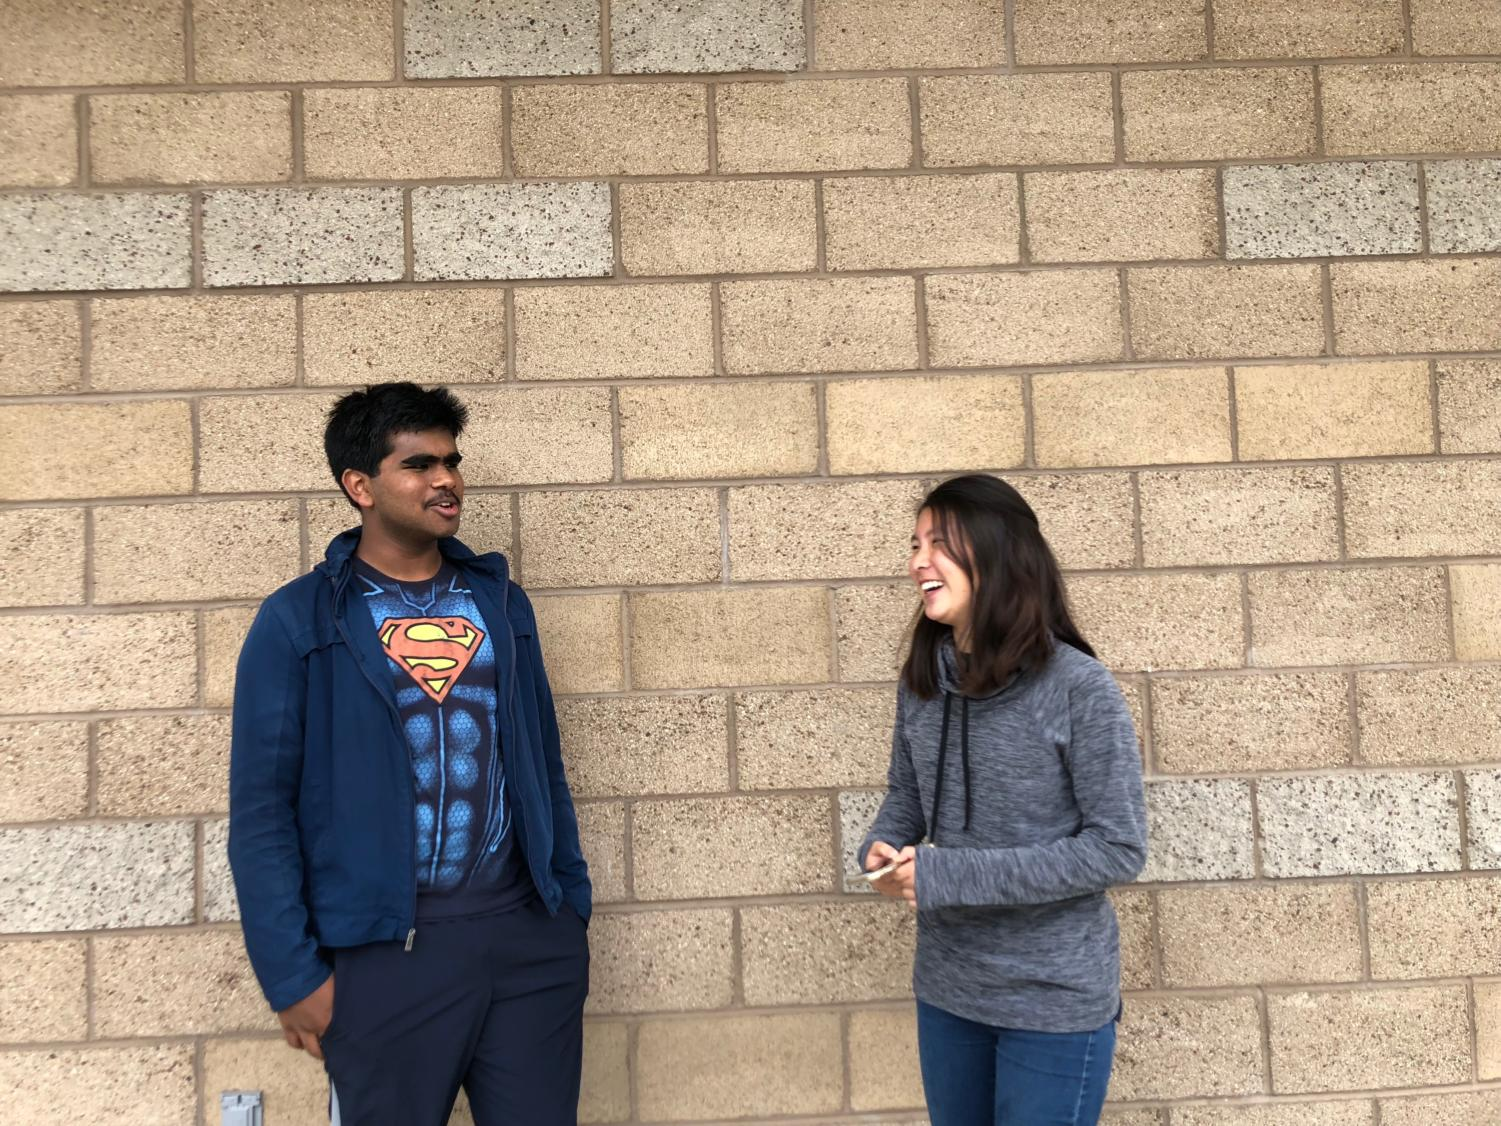 Sophomore Nishad Francis and freshman Kate Hayashi share a laugh as they discuss their differing views and recap on the year's memories.